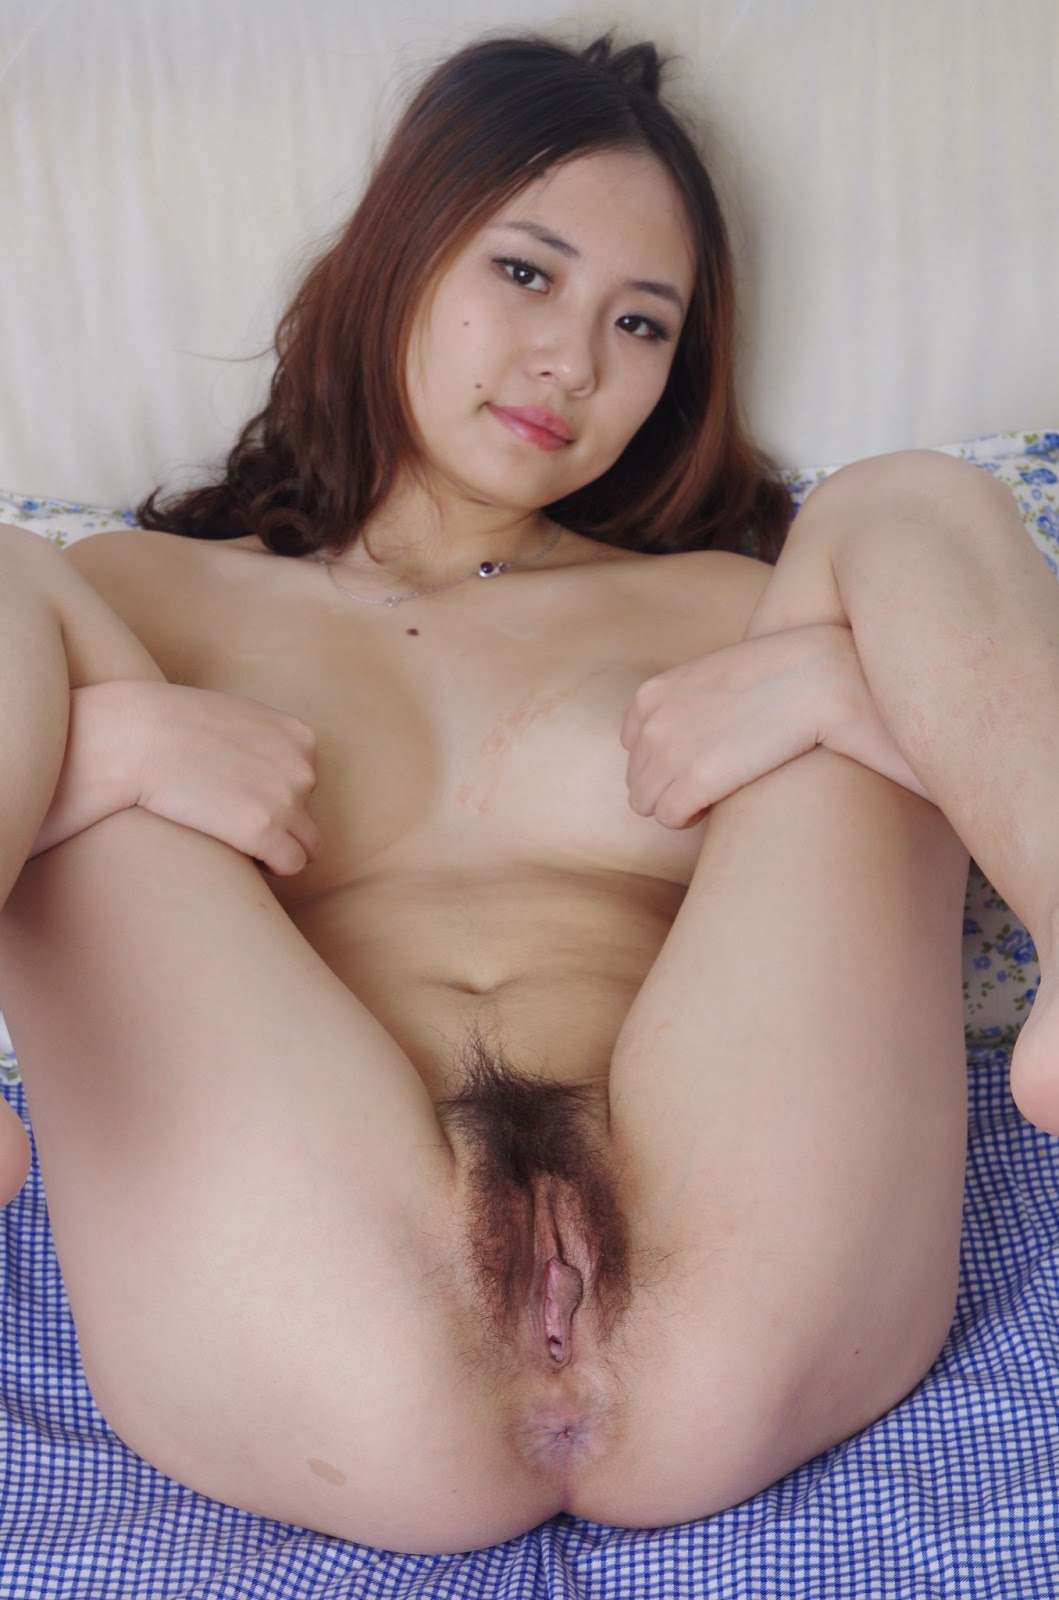 For the Sexy japan girl naked with